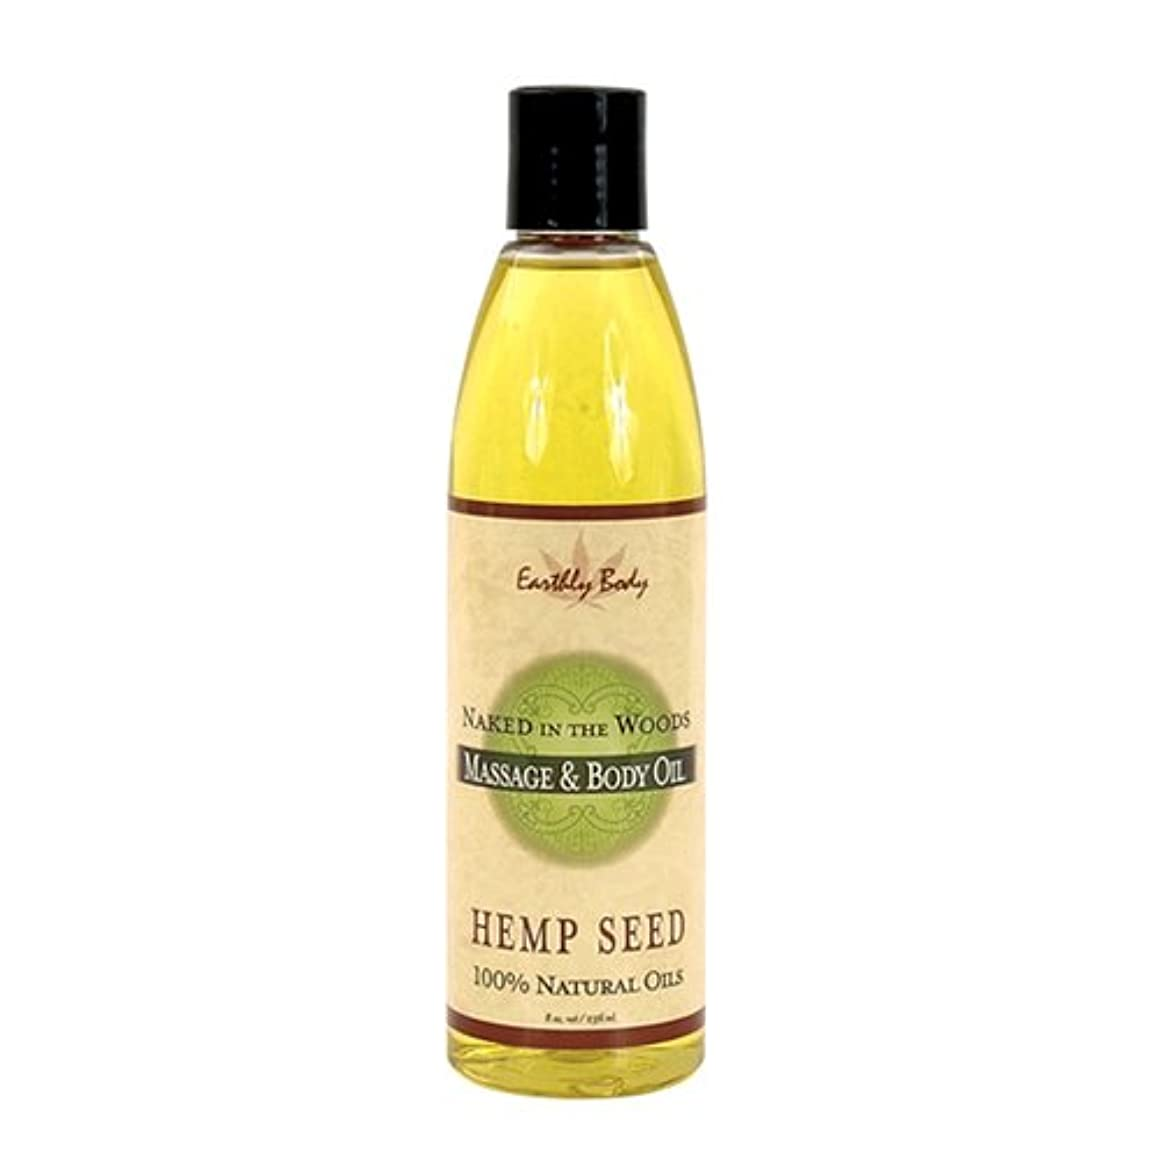 Massage Oil Naked In The Woods 8oz by Earthly Body